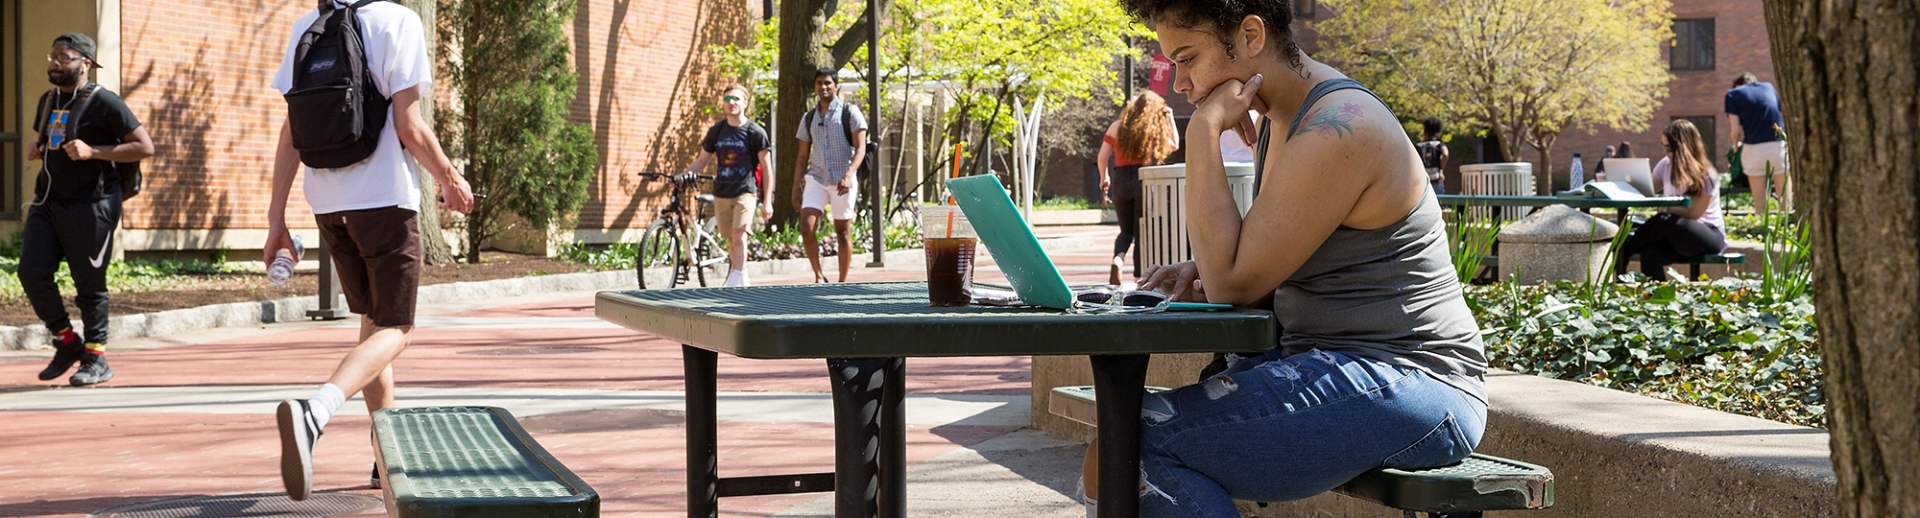 Student working on her laptop seated on a picnic bench in springtime